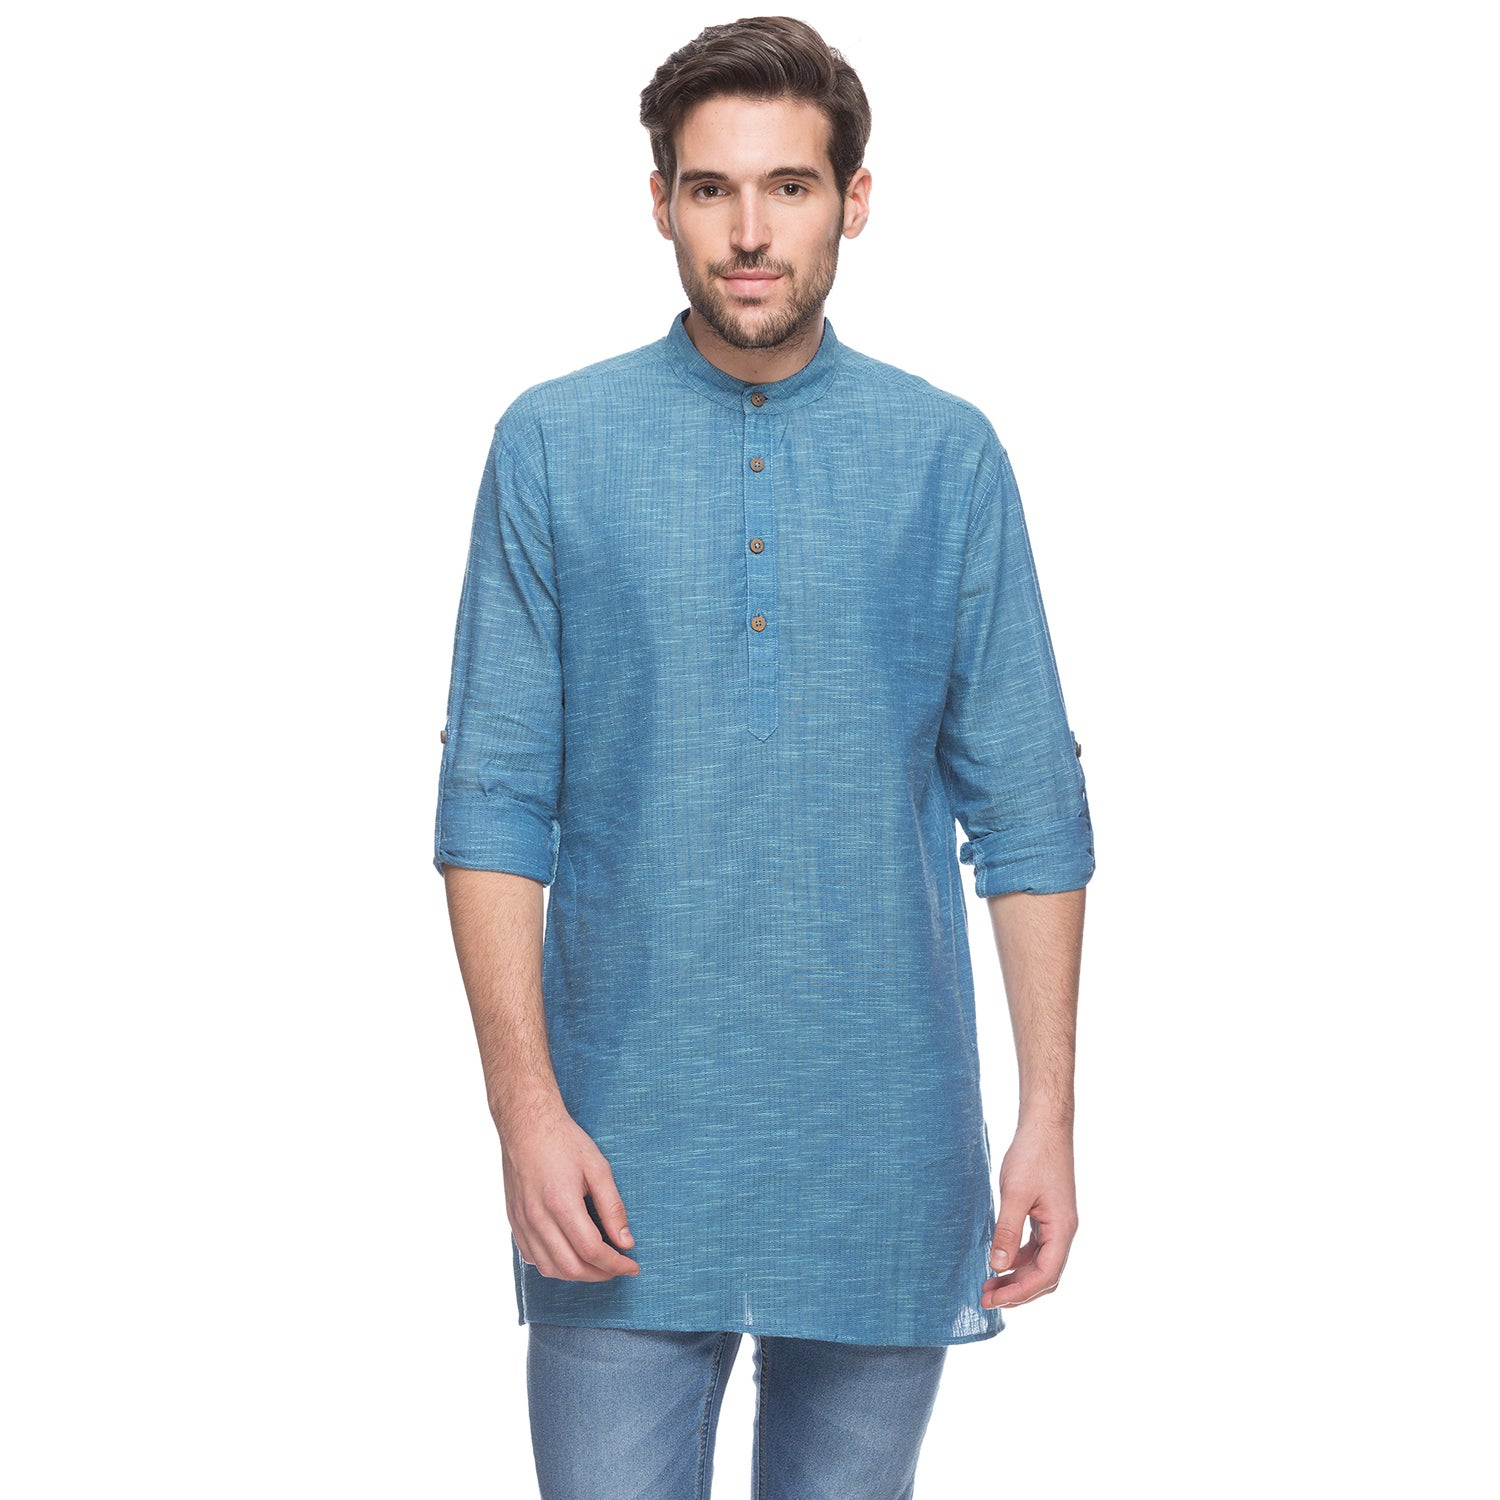 Handmade In-Sattva Men's Shatranj Indian Blue Textured Ba...